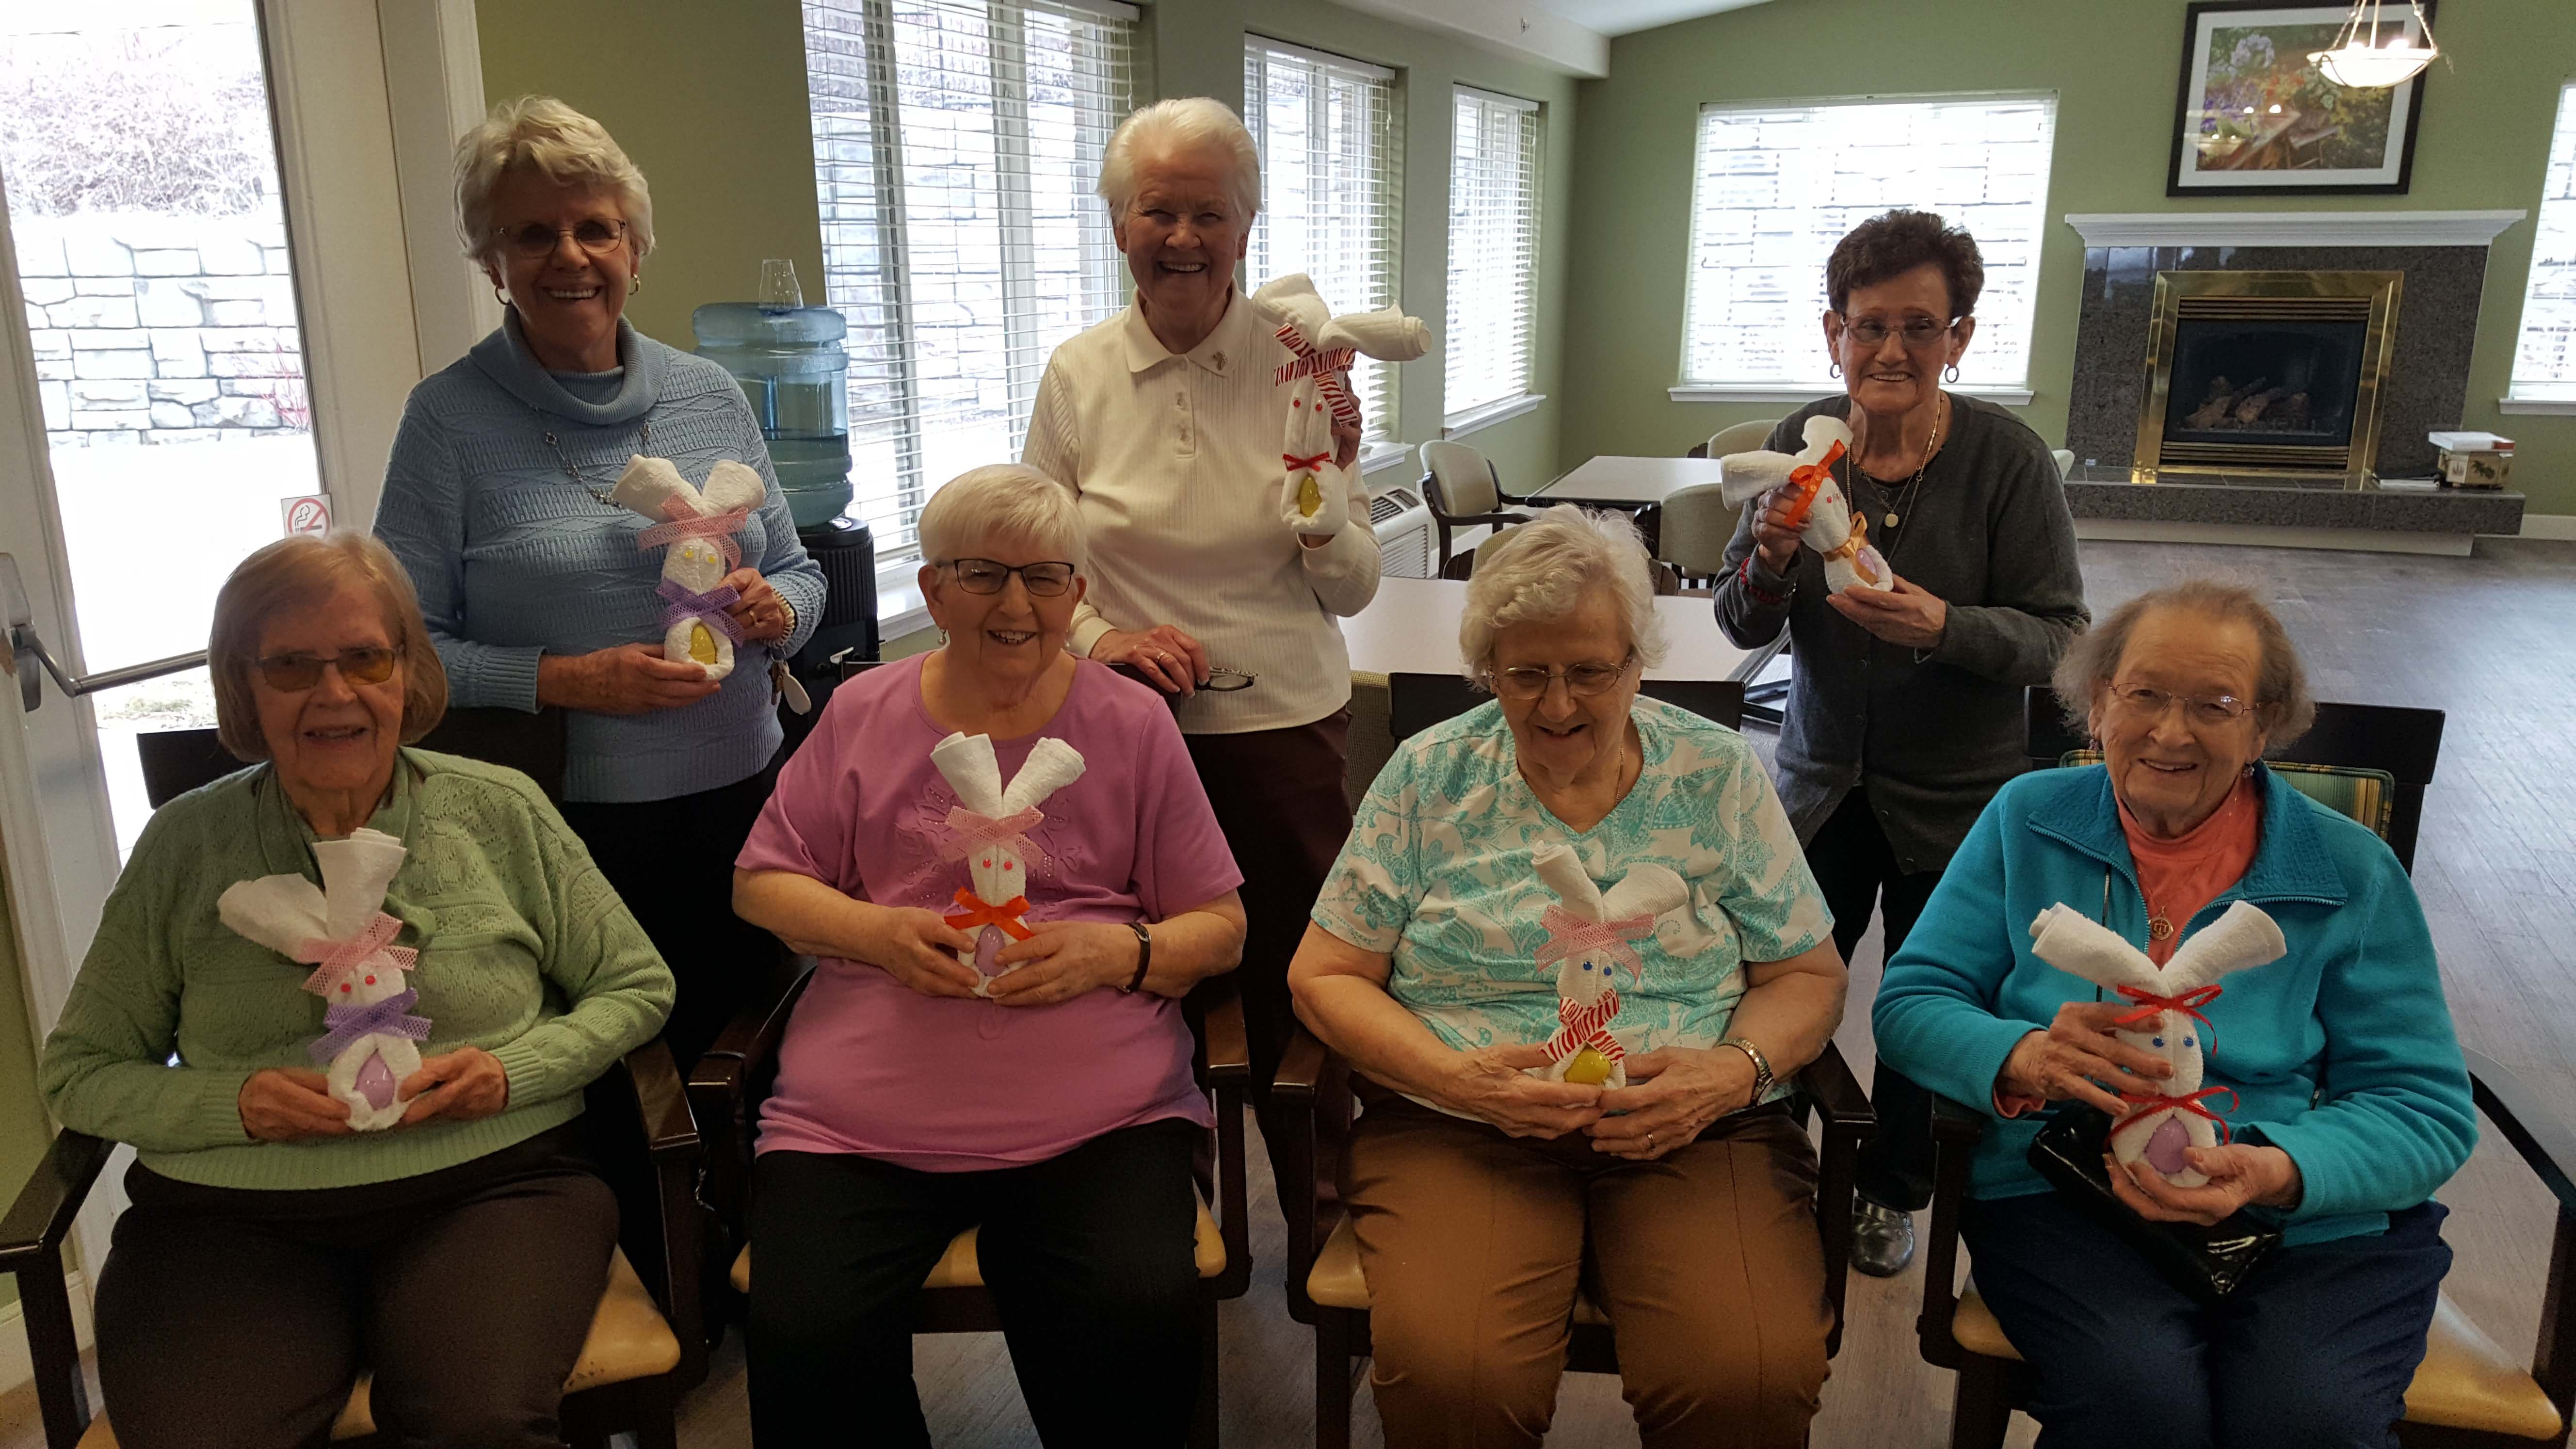 A group of seniors creating Easter-inspired crafts.